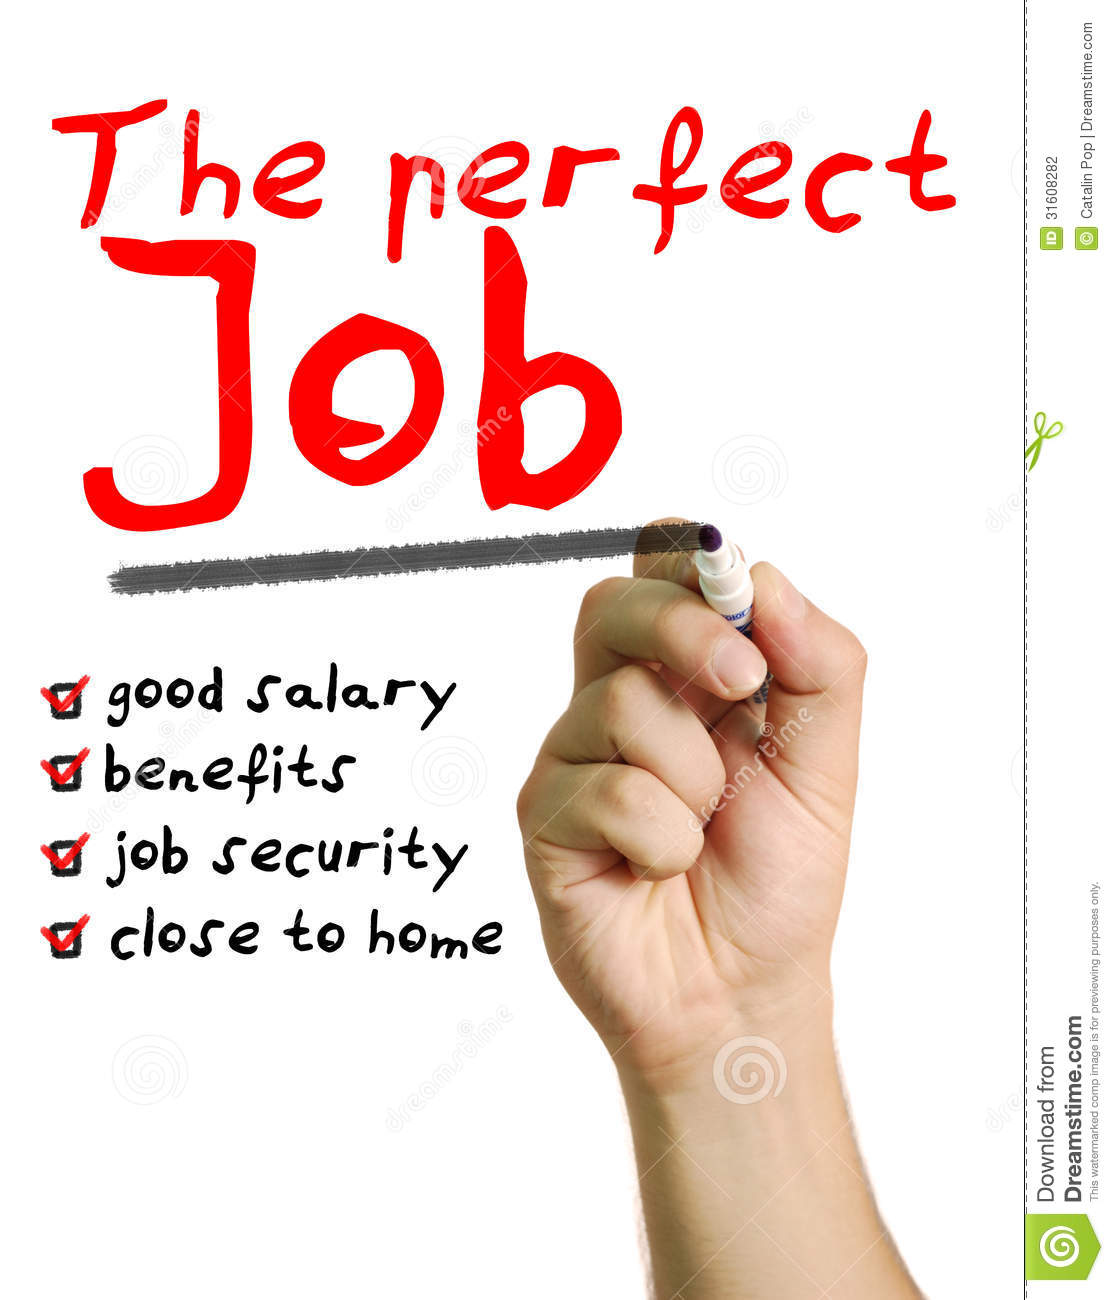 Personal Security Jobs Salary